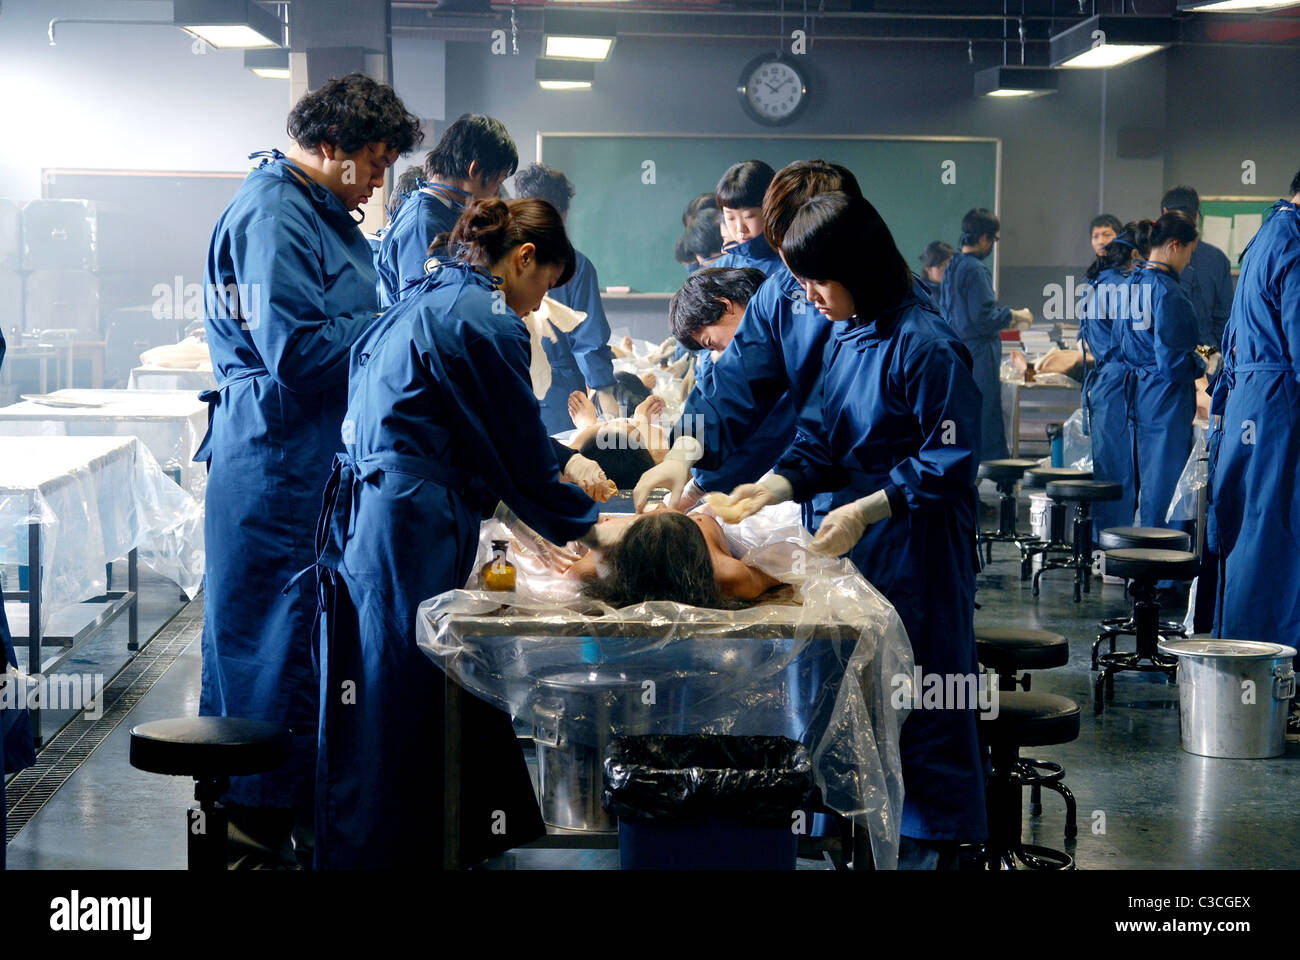 MEDICAL STUDENTS CADAVER (2009) - Stock Image